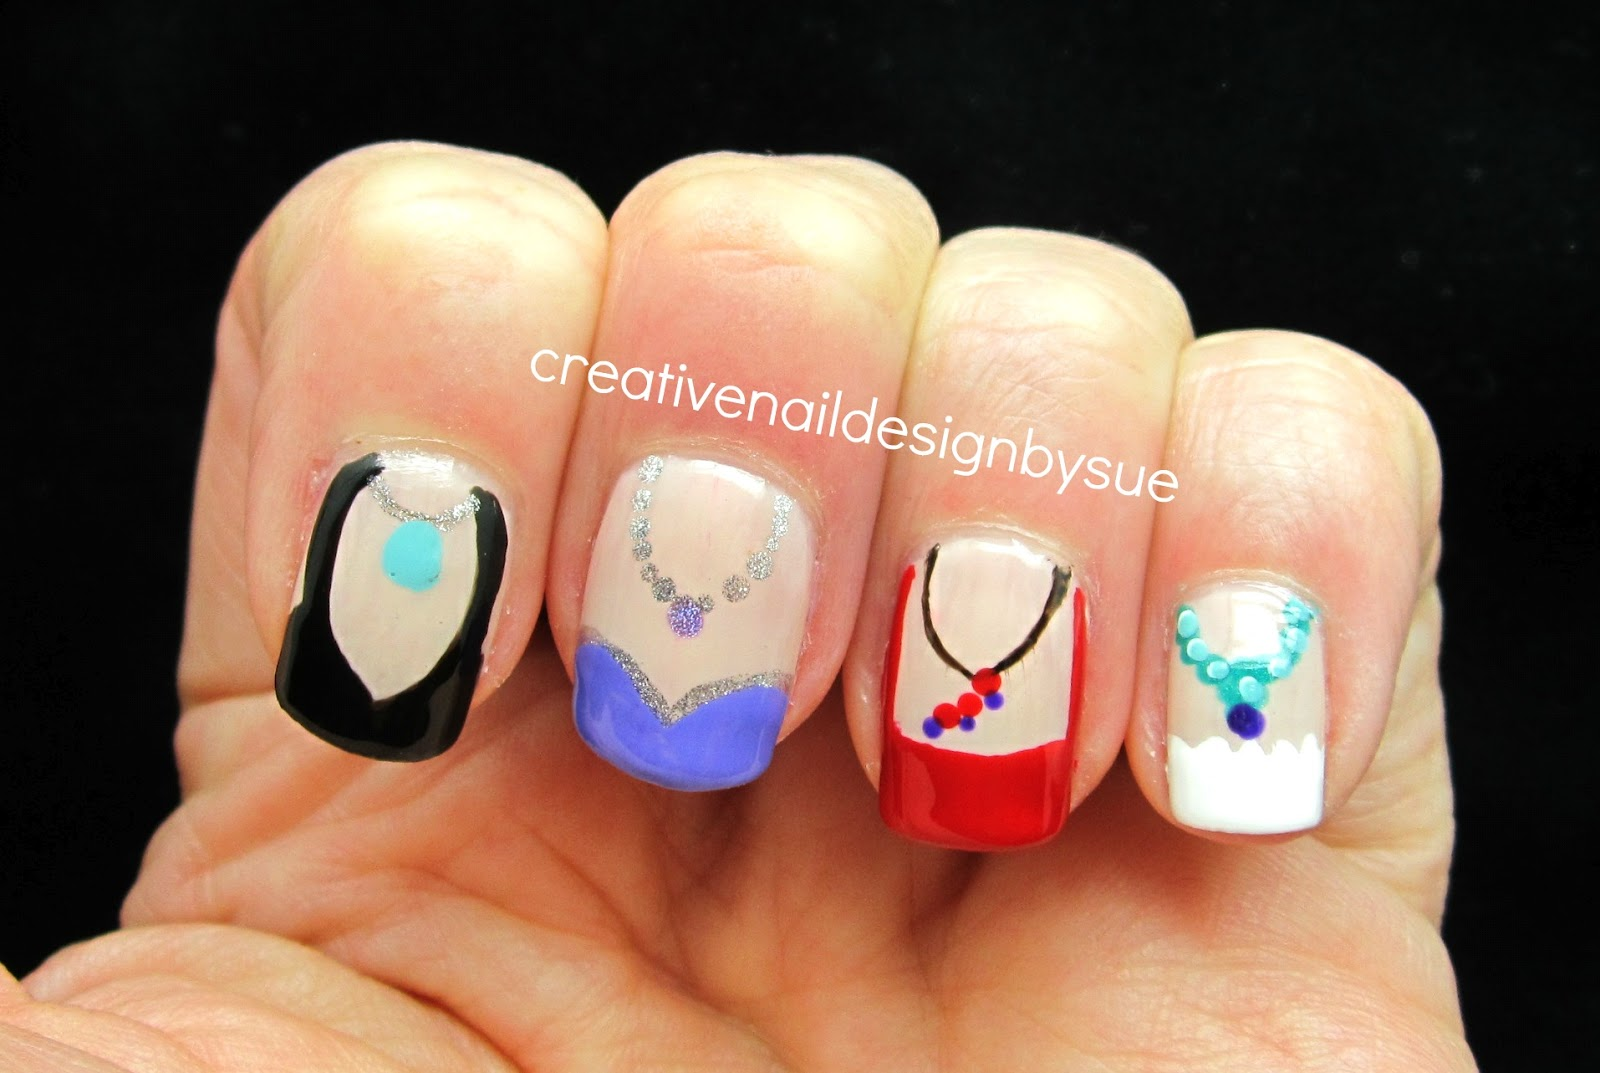 cutenailsart 4 summer pedicureseasy amp fun designs